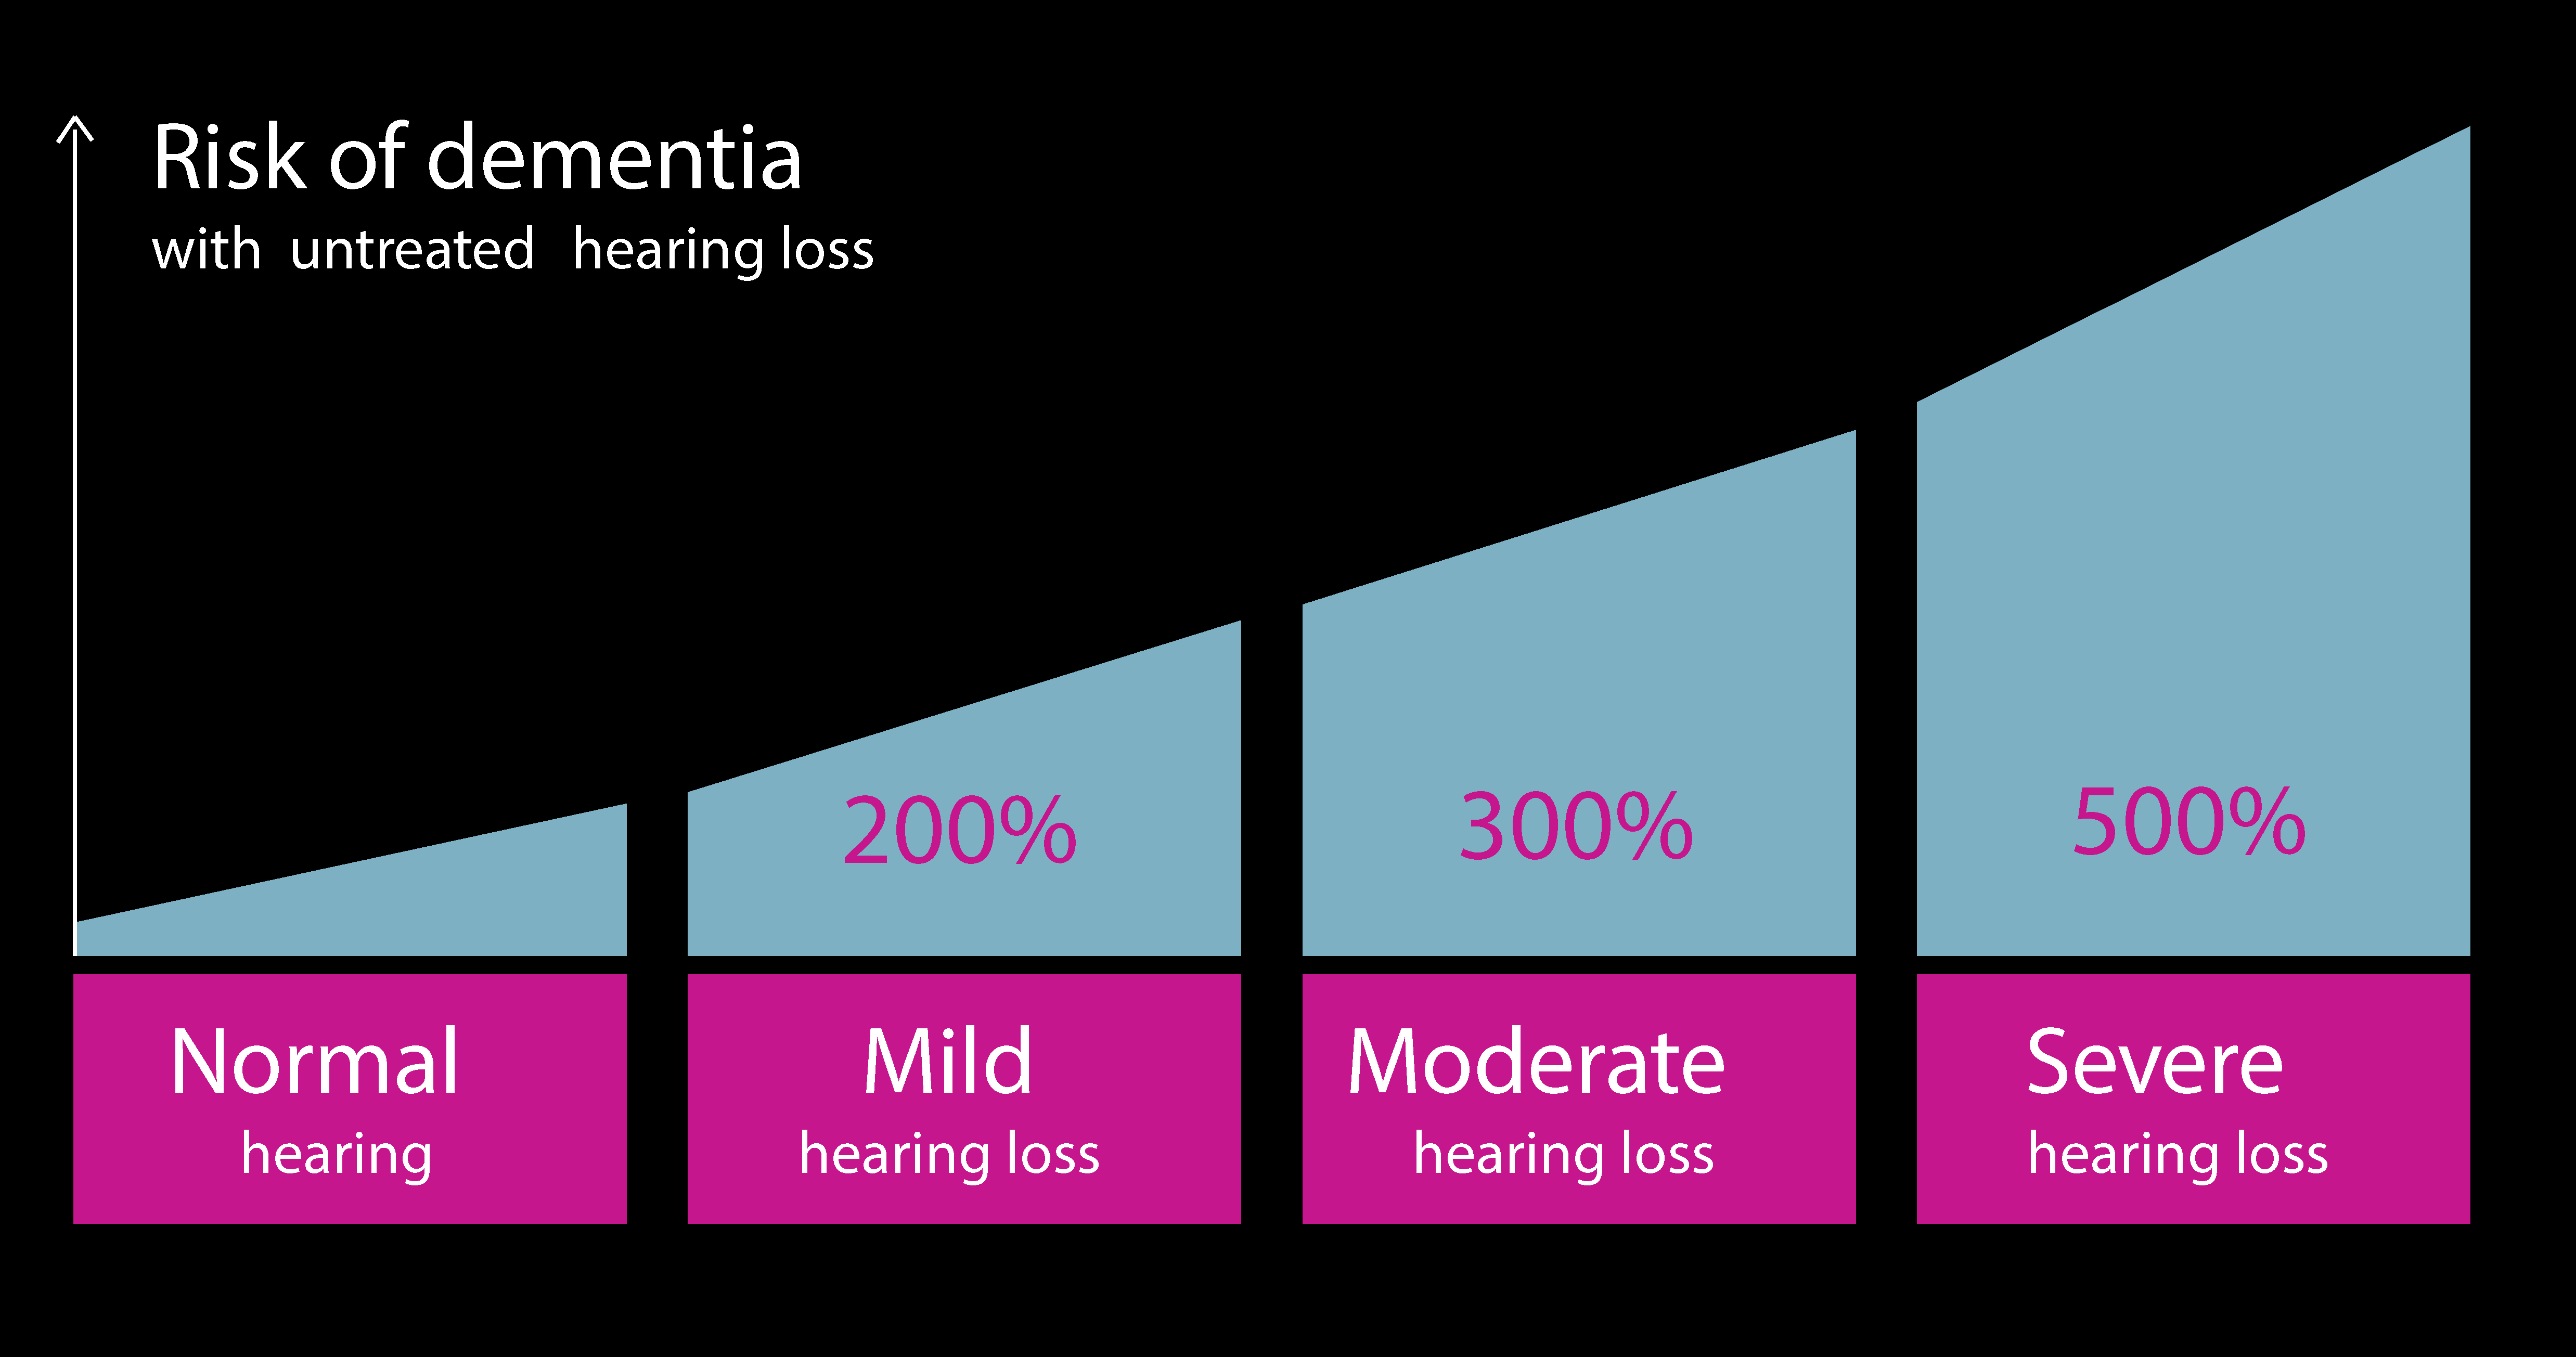 four types of hearing loss compared to dementia risk